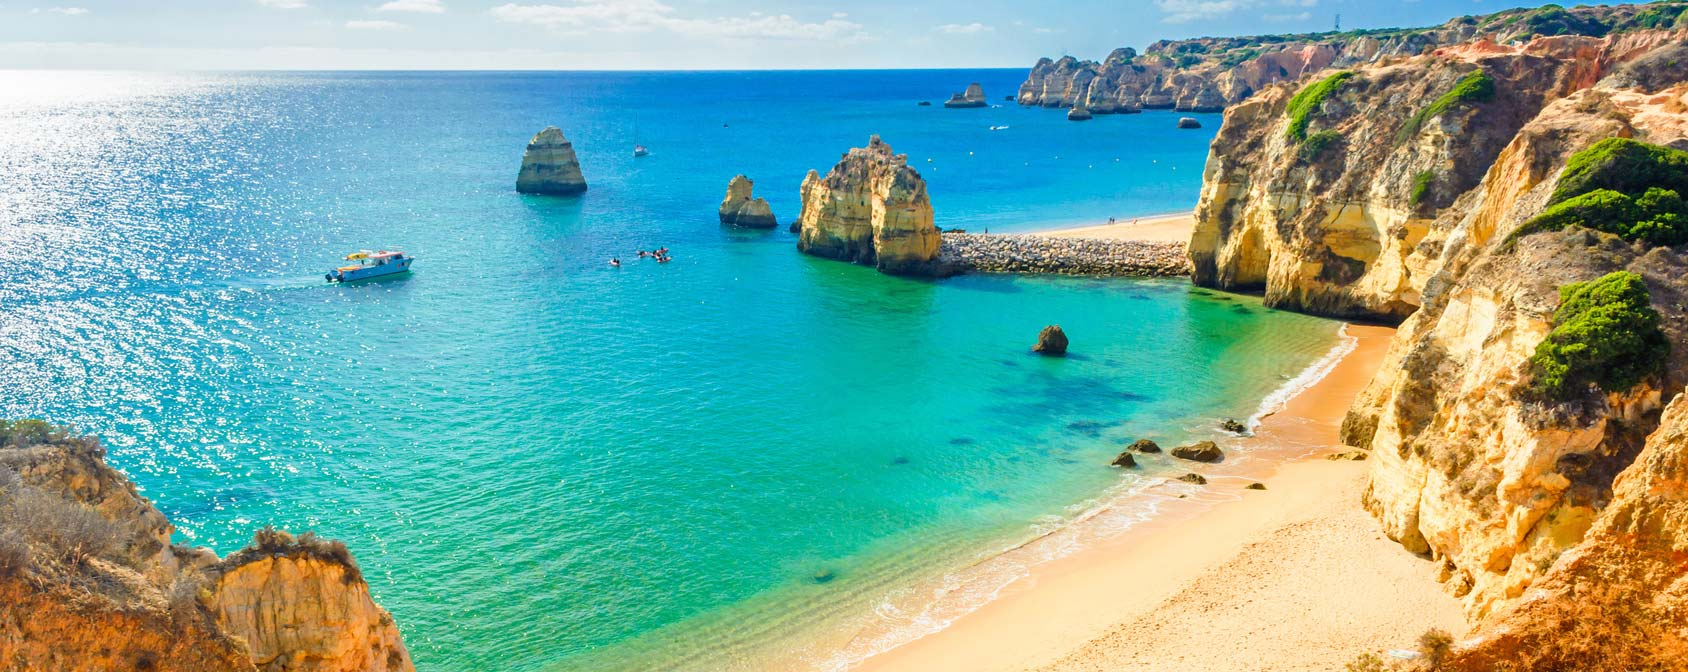 tui blue beach holiday algarve header